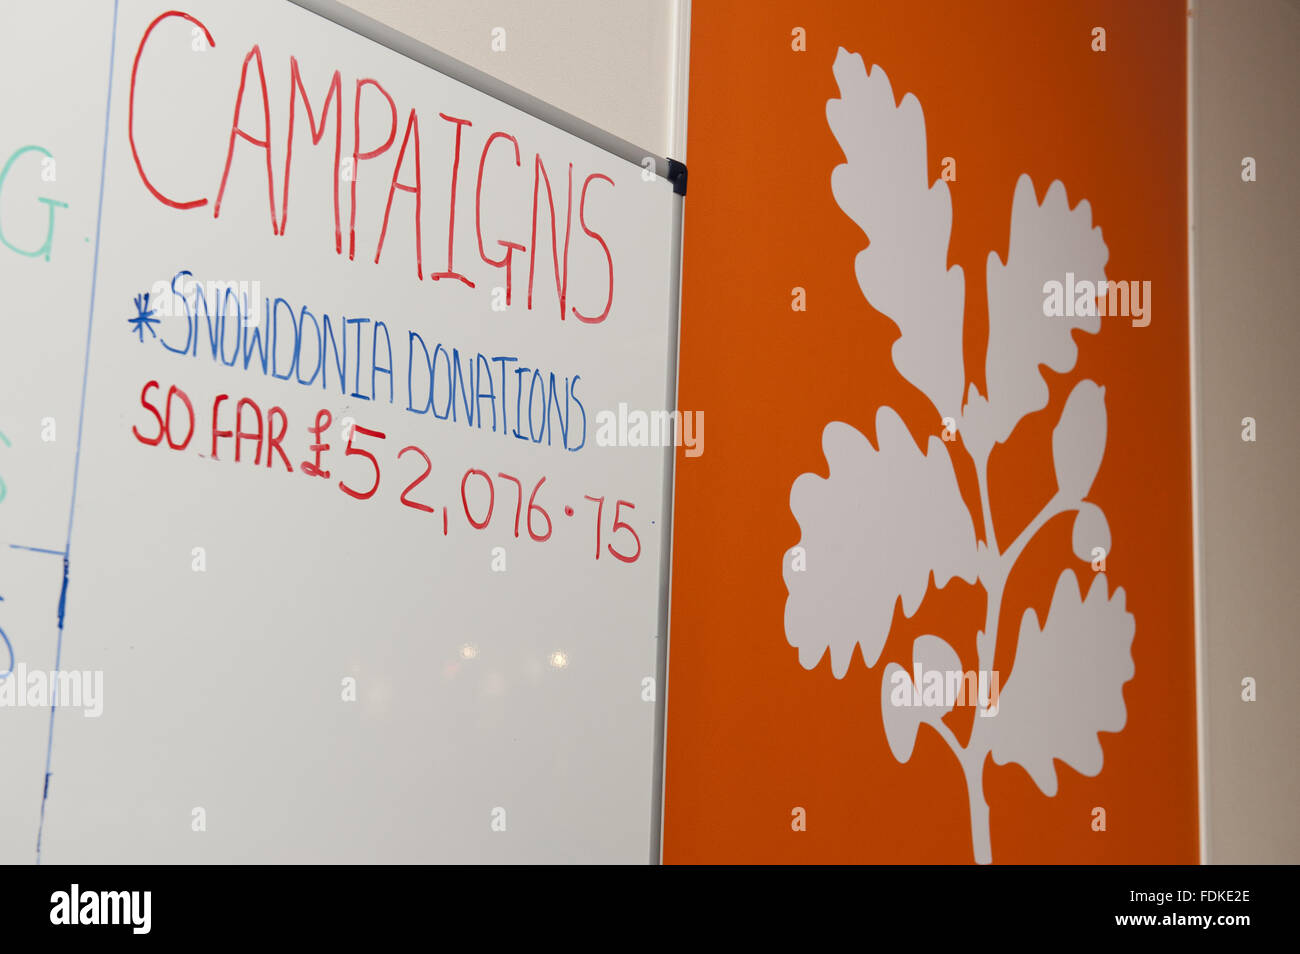 Campaigns board and logo at the National Trust Membership Department at Warrington. - Stock Image